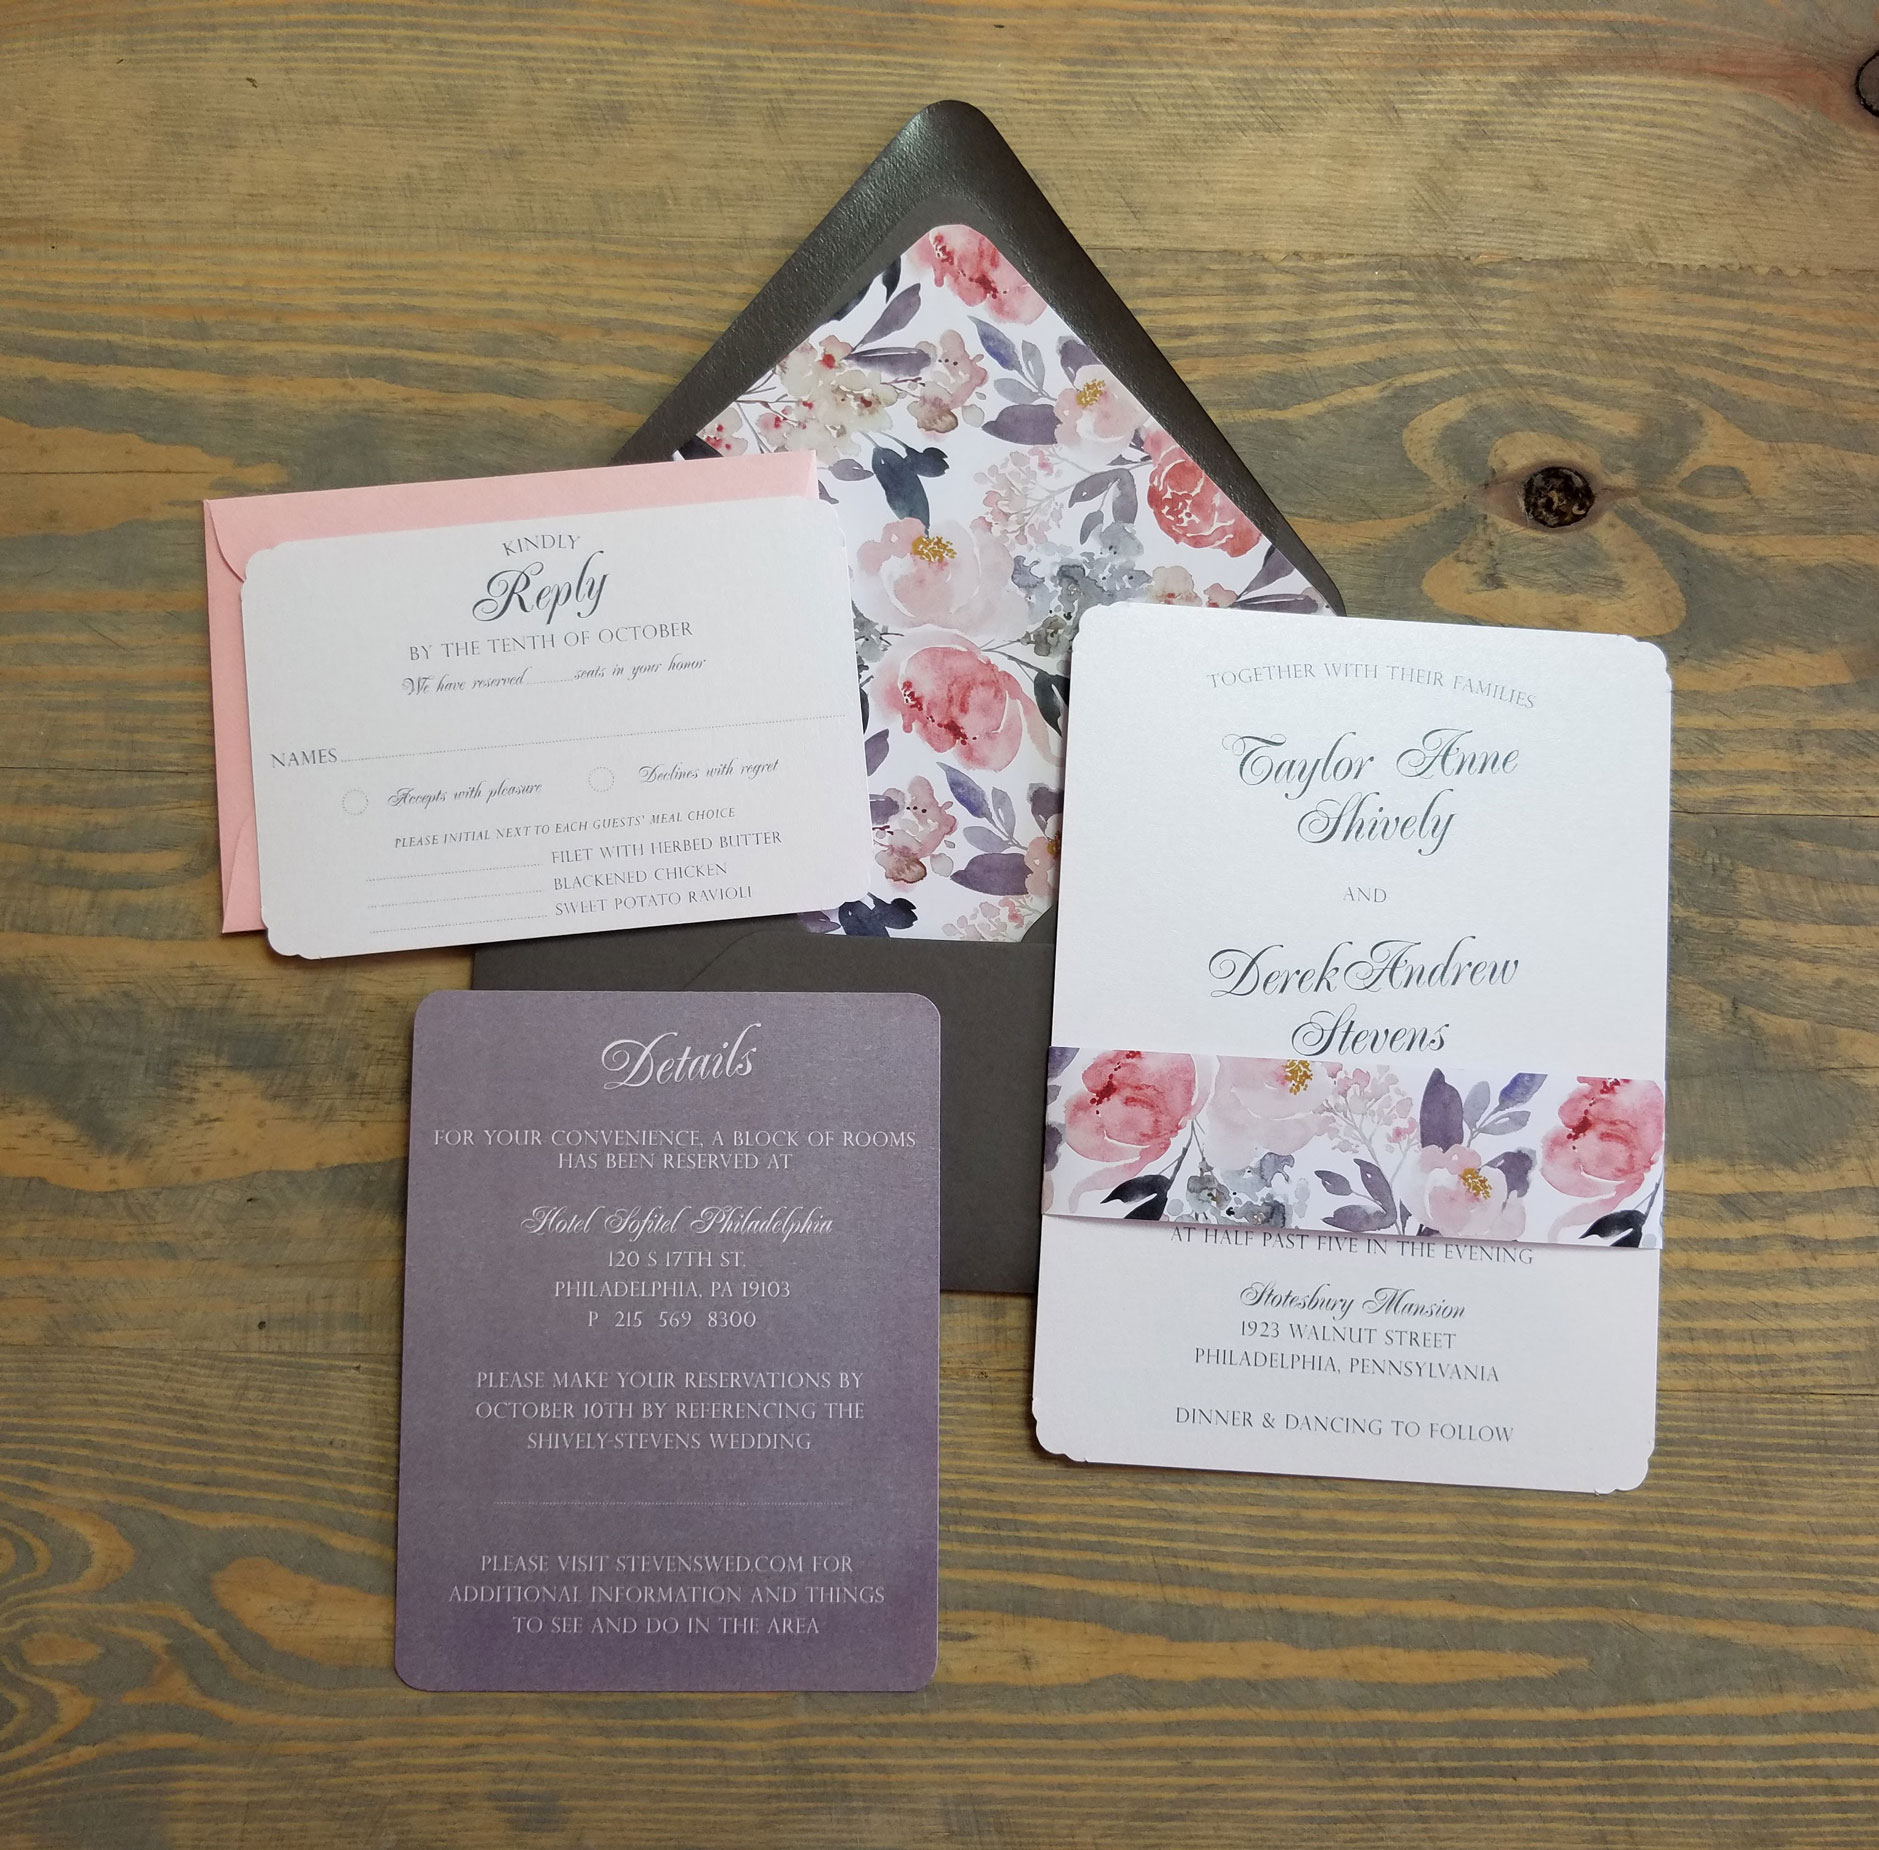 stunning_botanicals_wedding_invitation1